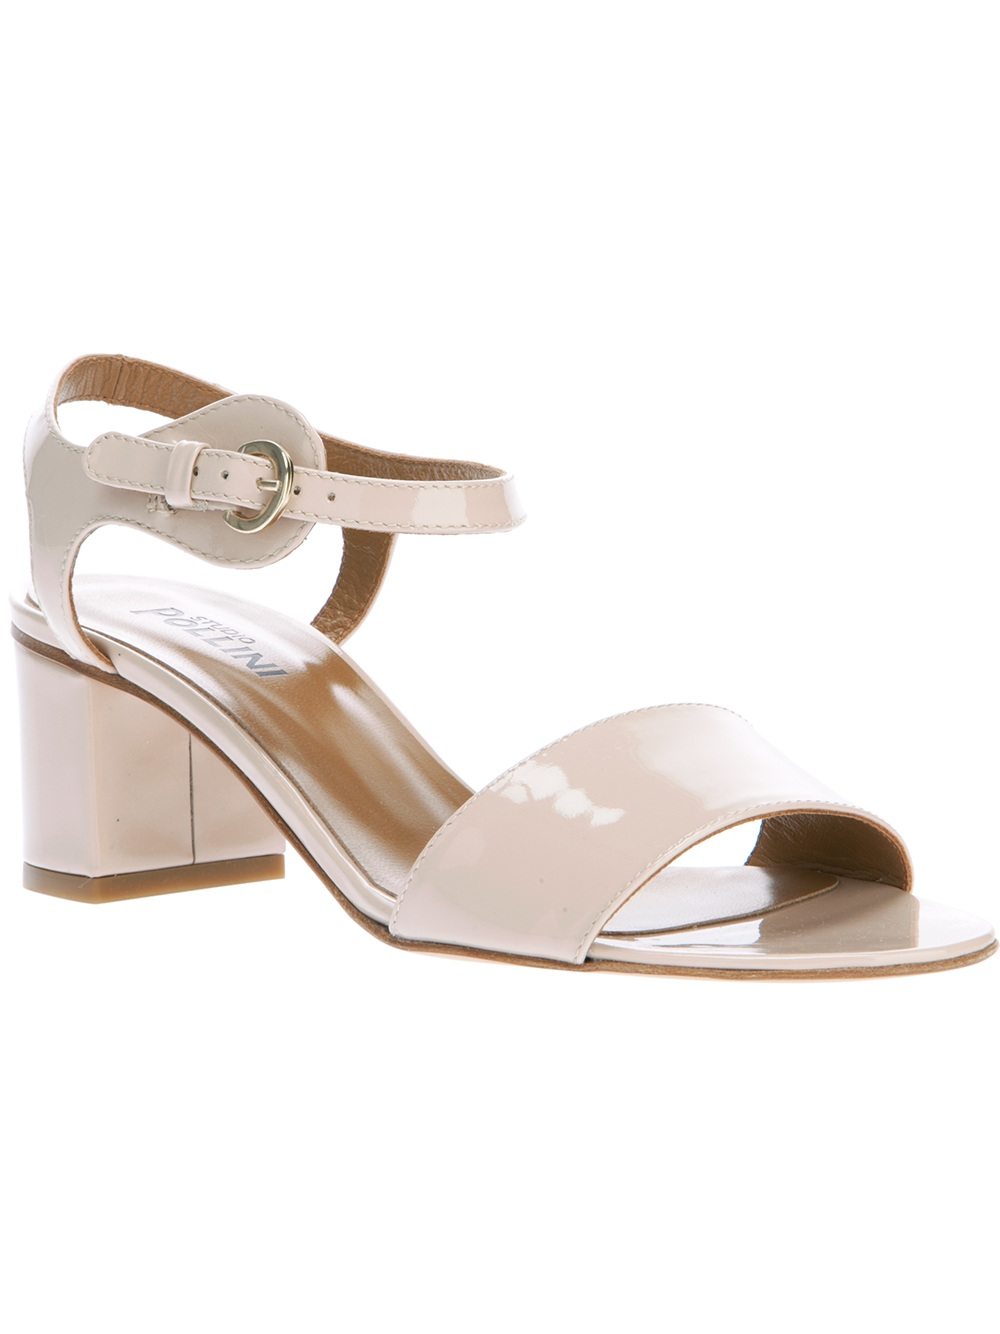 discount clearance clearance purchase Pollini block heel sandals discount very cheap buy cheap 100% guaranteed best for sale 7emRqVANT